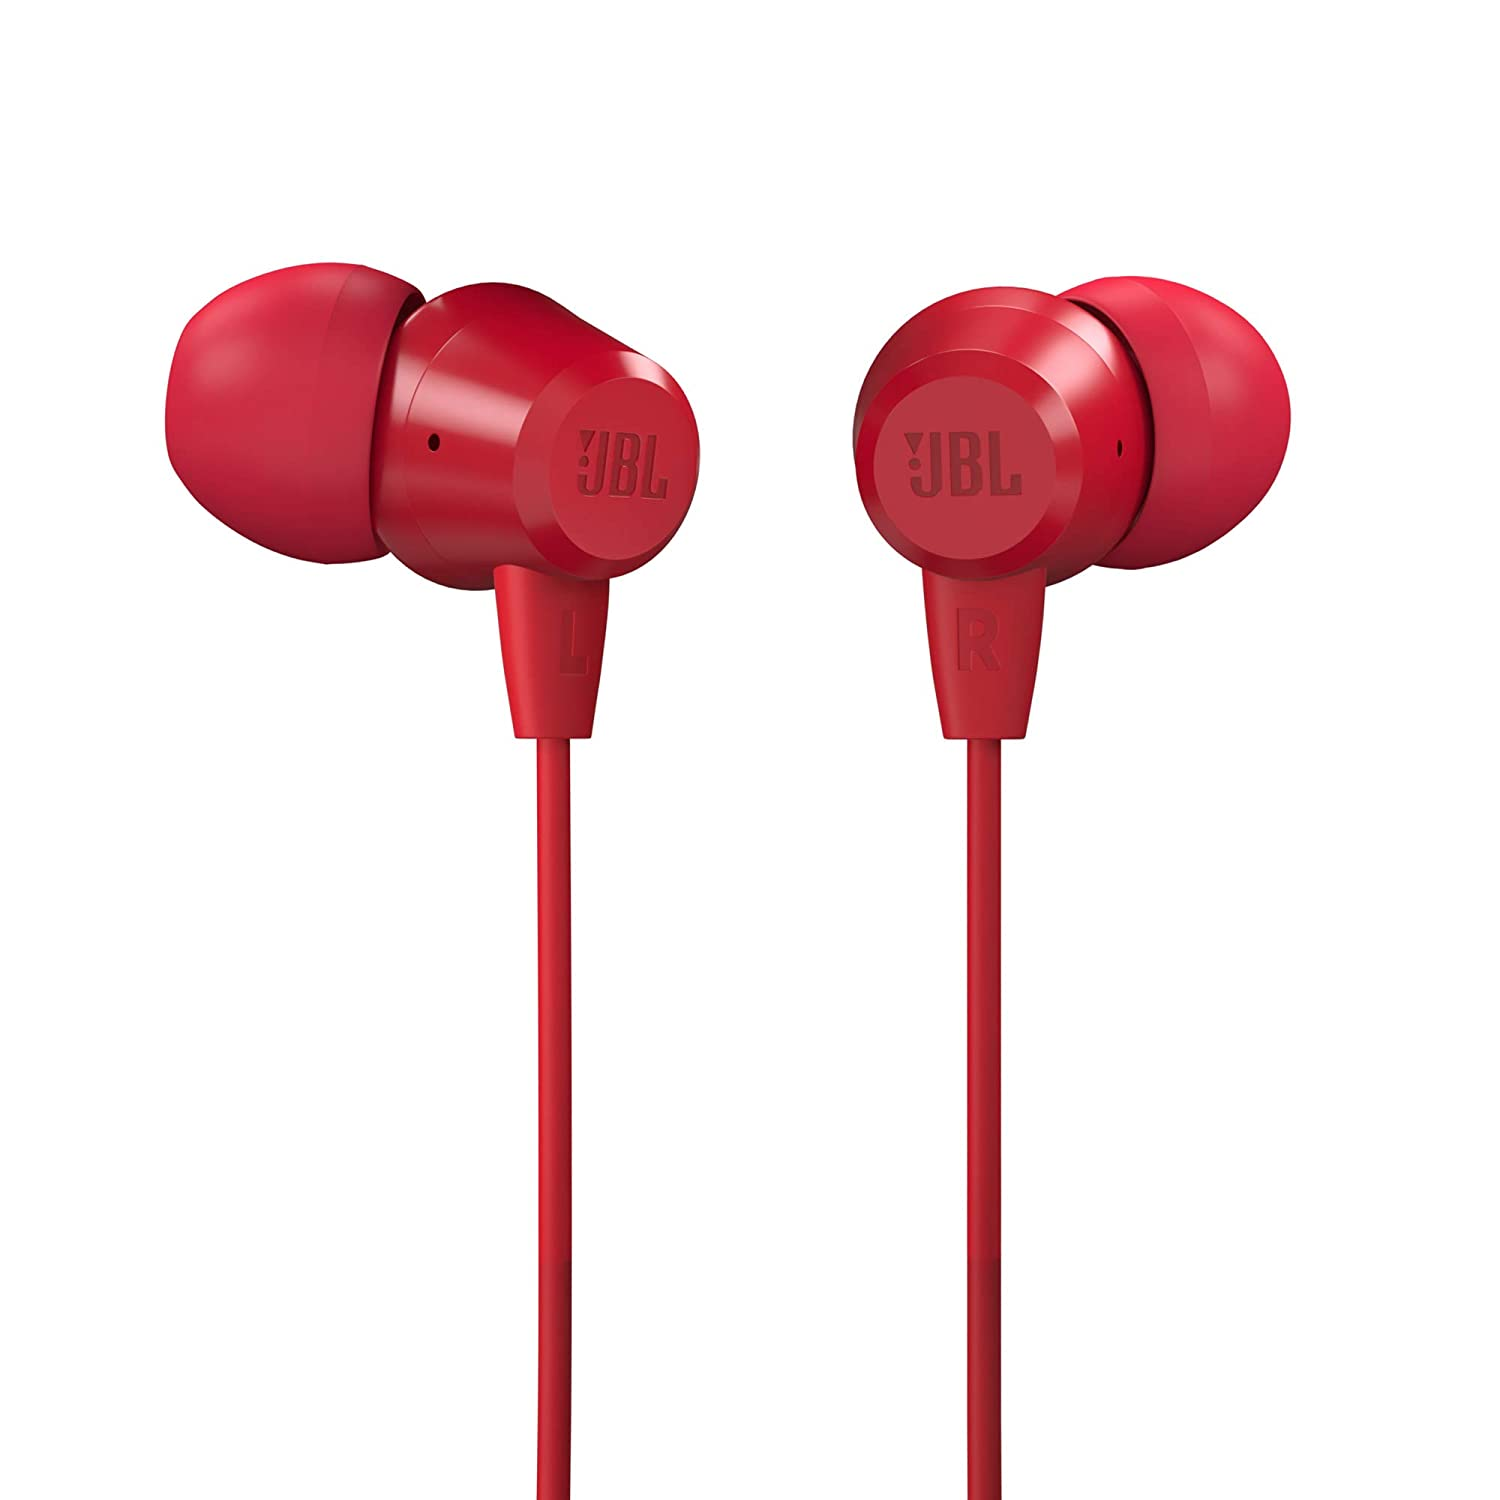 The 10 Best Earphones Under 500 INR With Mic And Bass Boost 2